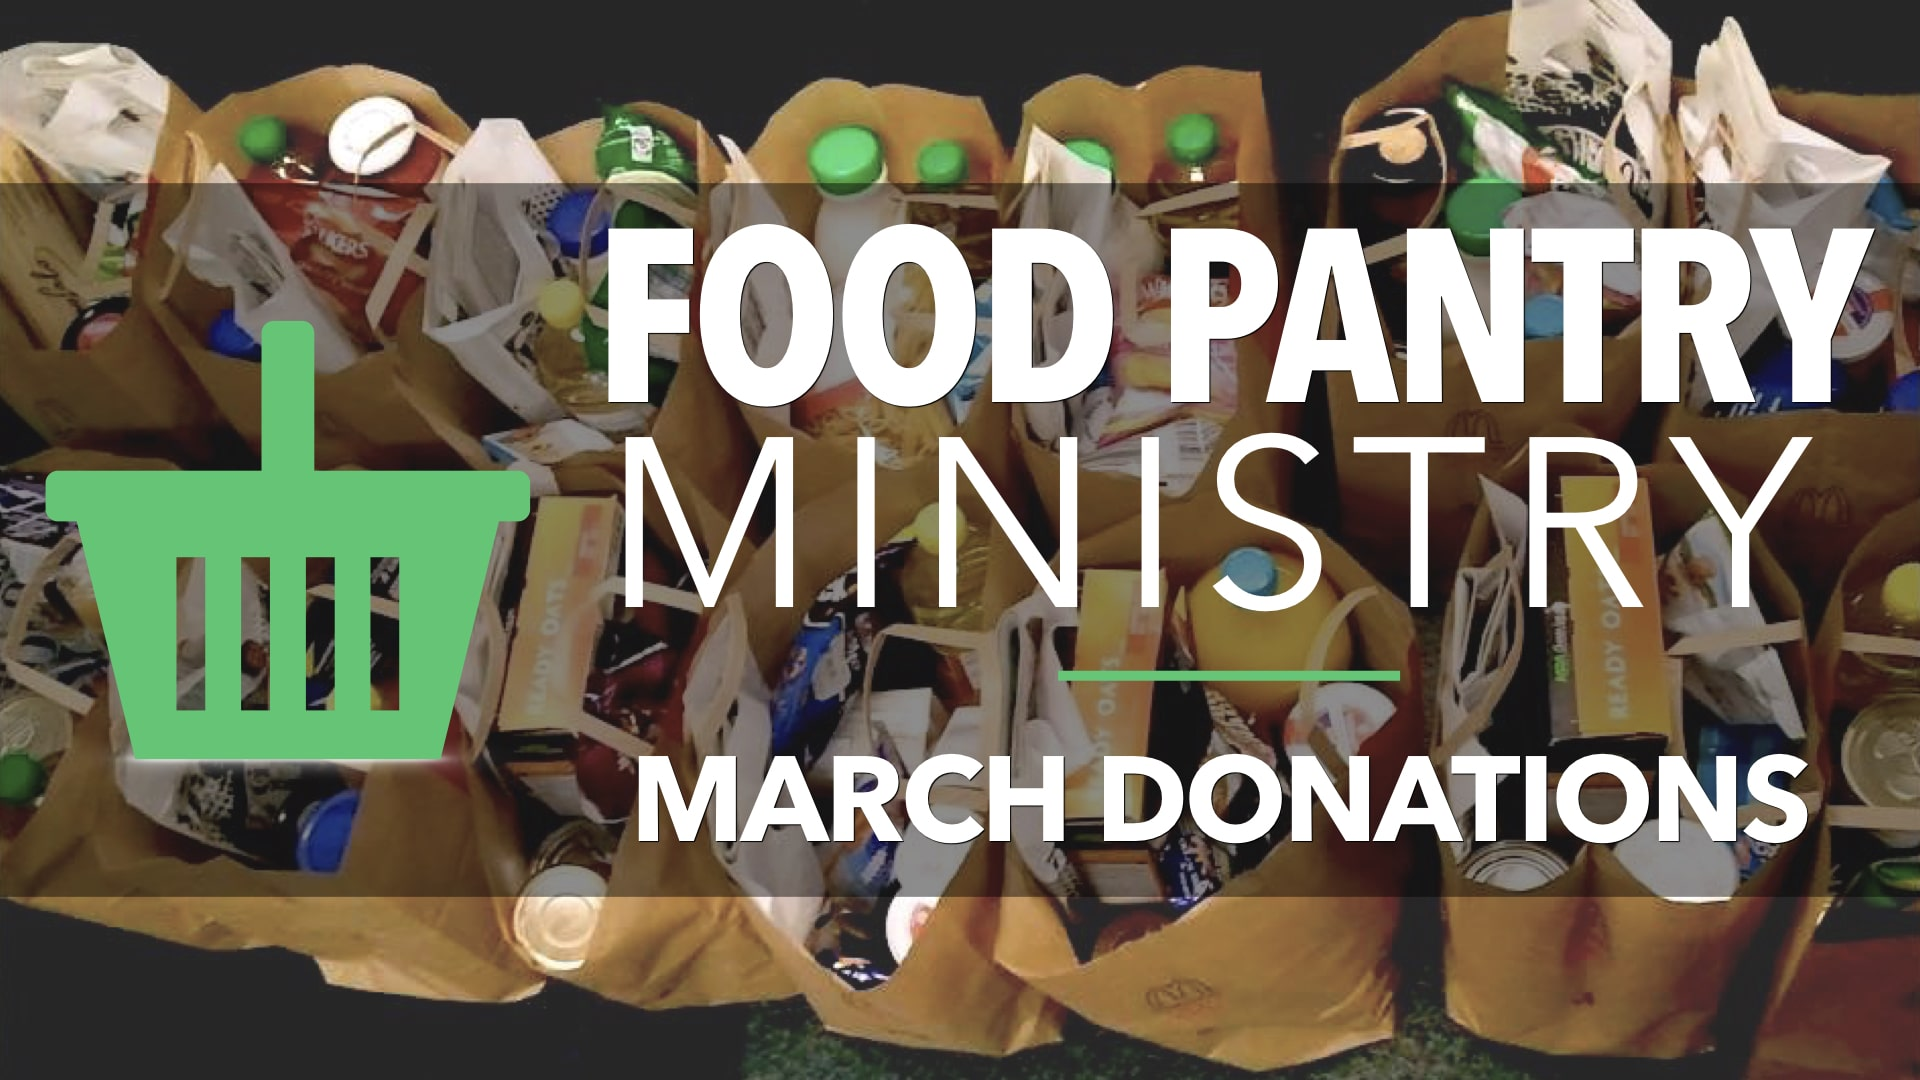 RLC Food Pantry Ministry: March Donations